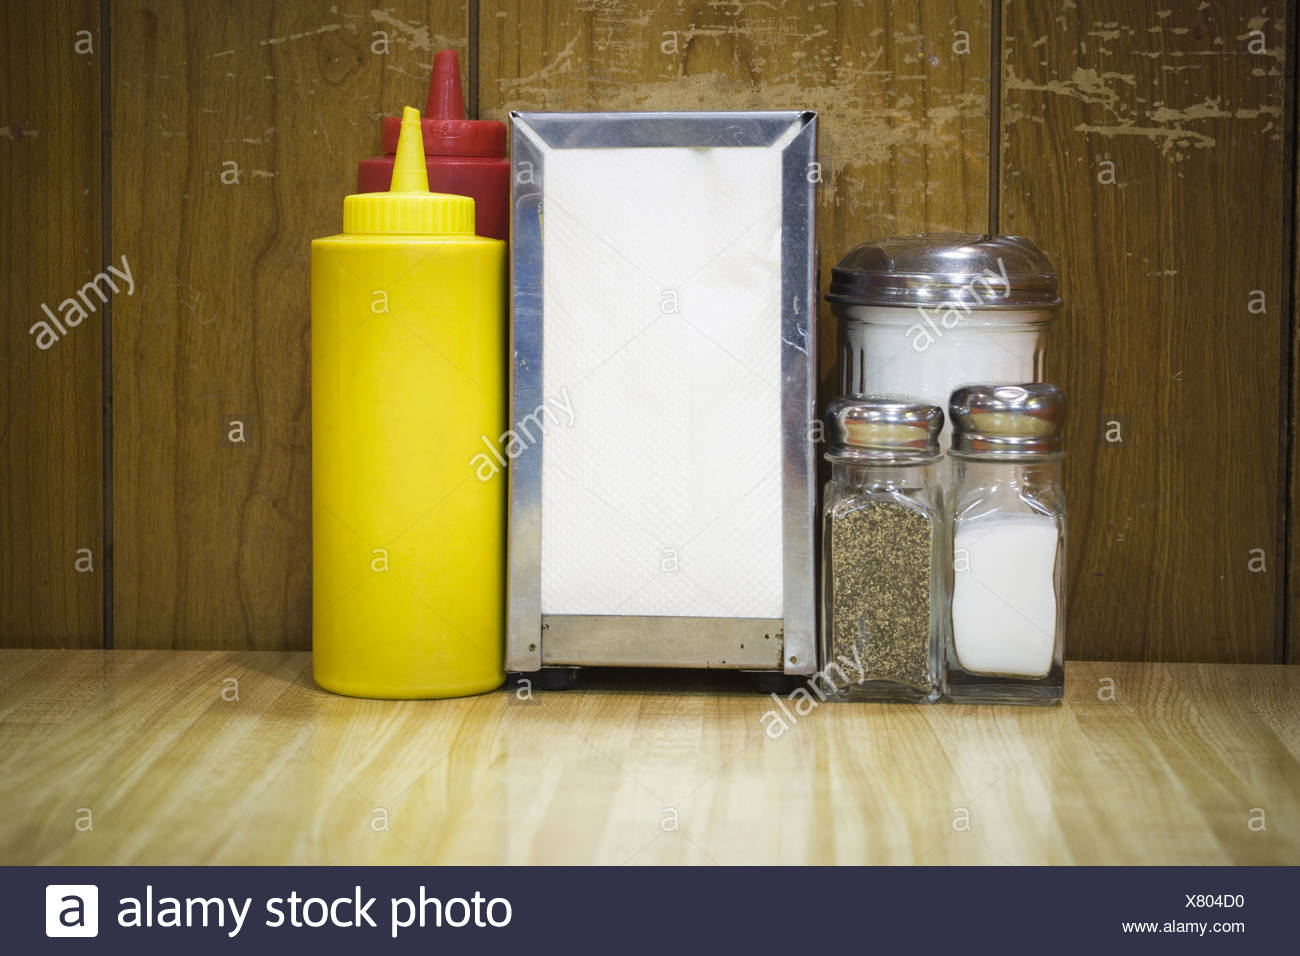 Pepper Shaker And Salt Shaker With A Napkin Holder On A Table In A Restaurant Stock Photo Alamy